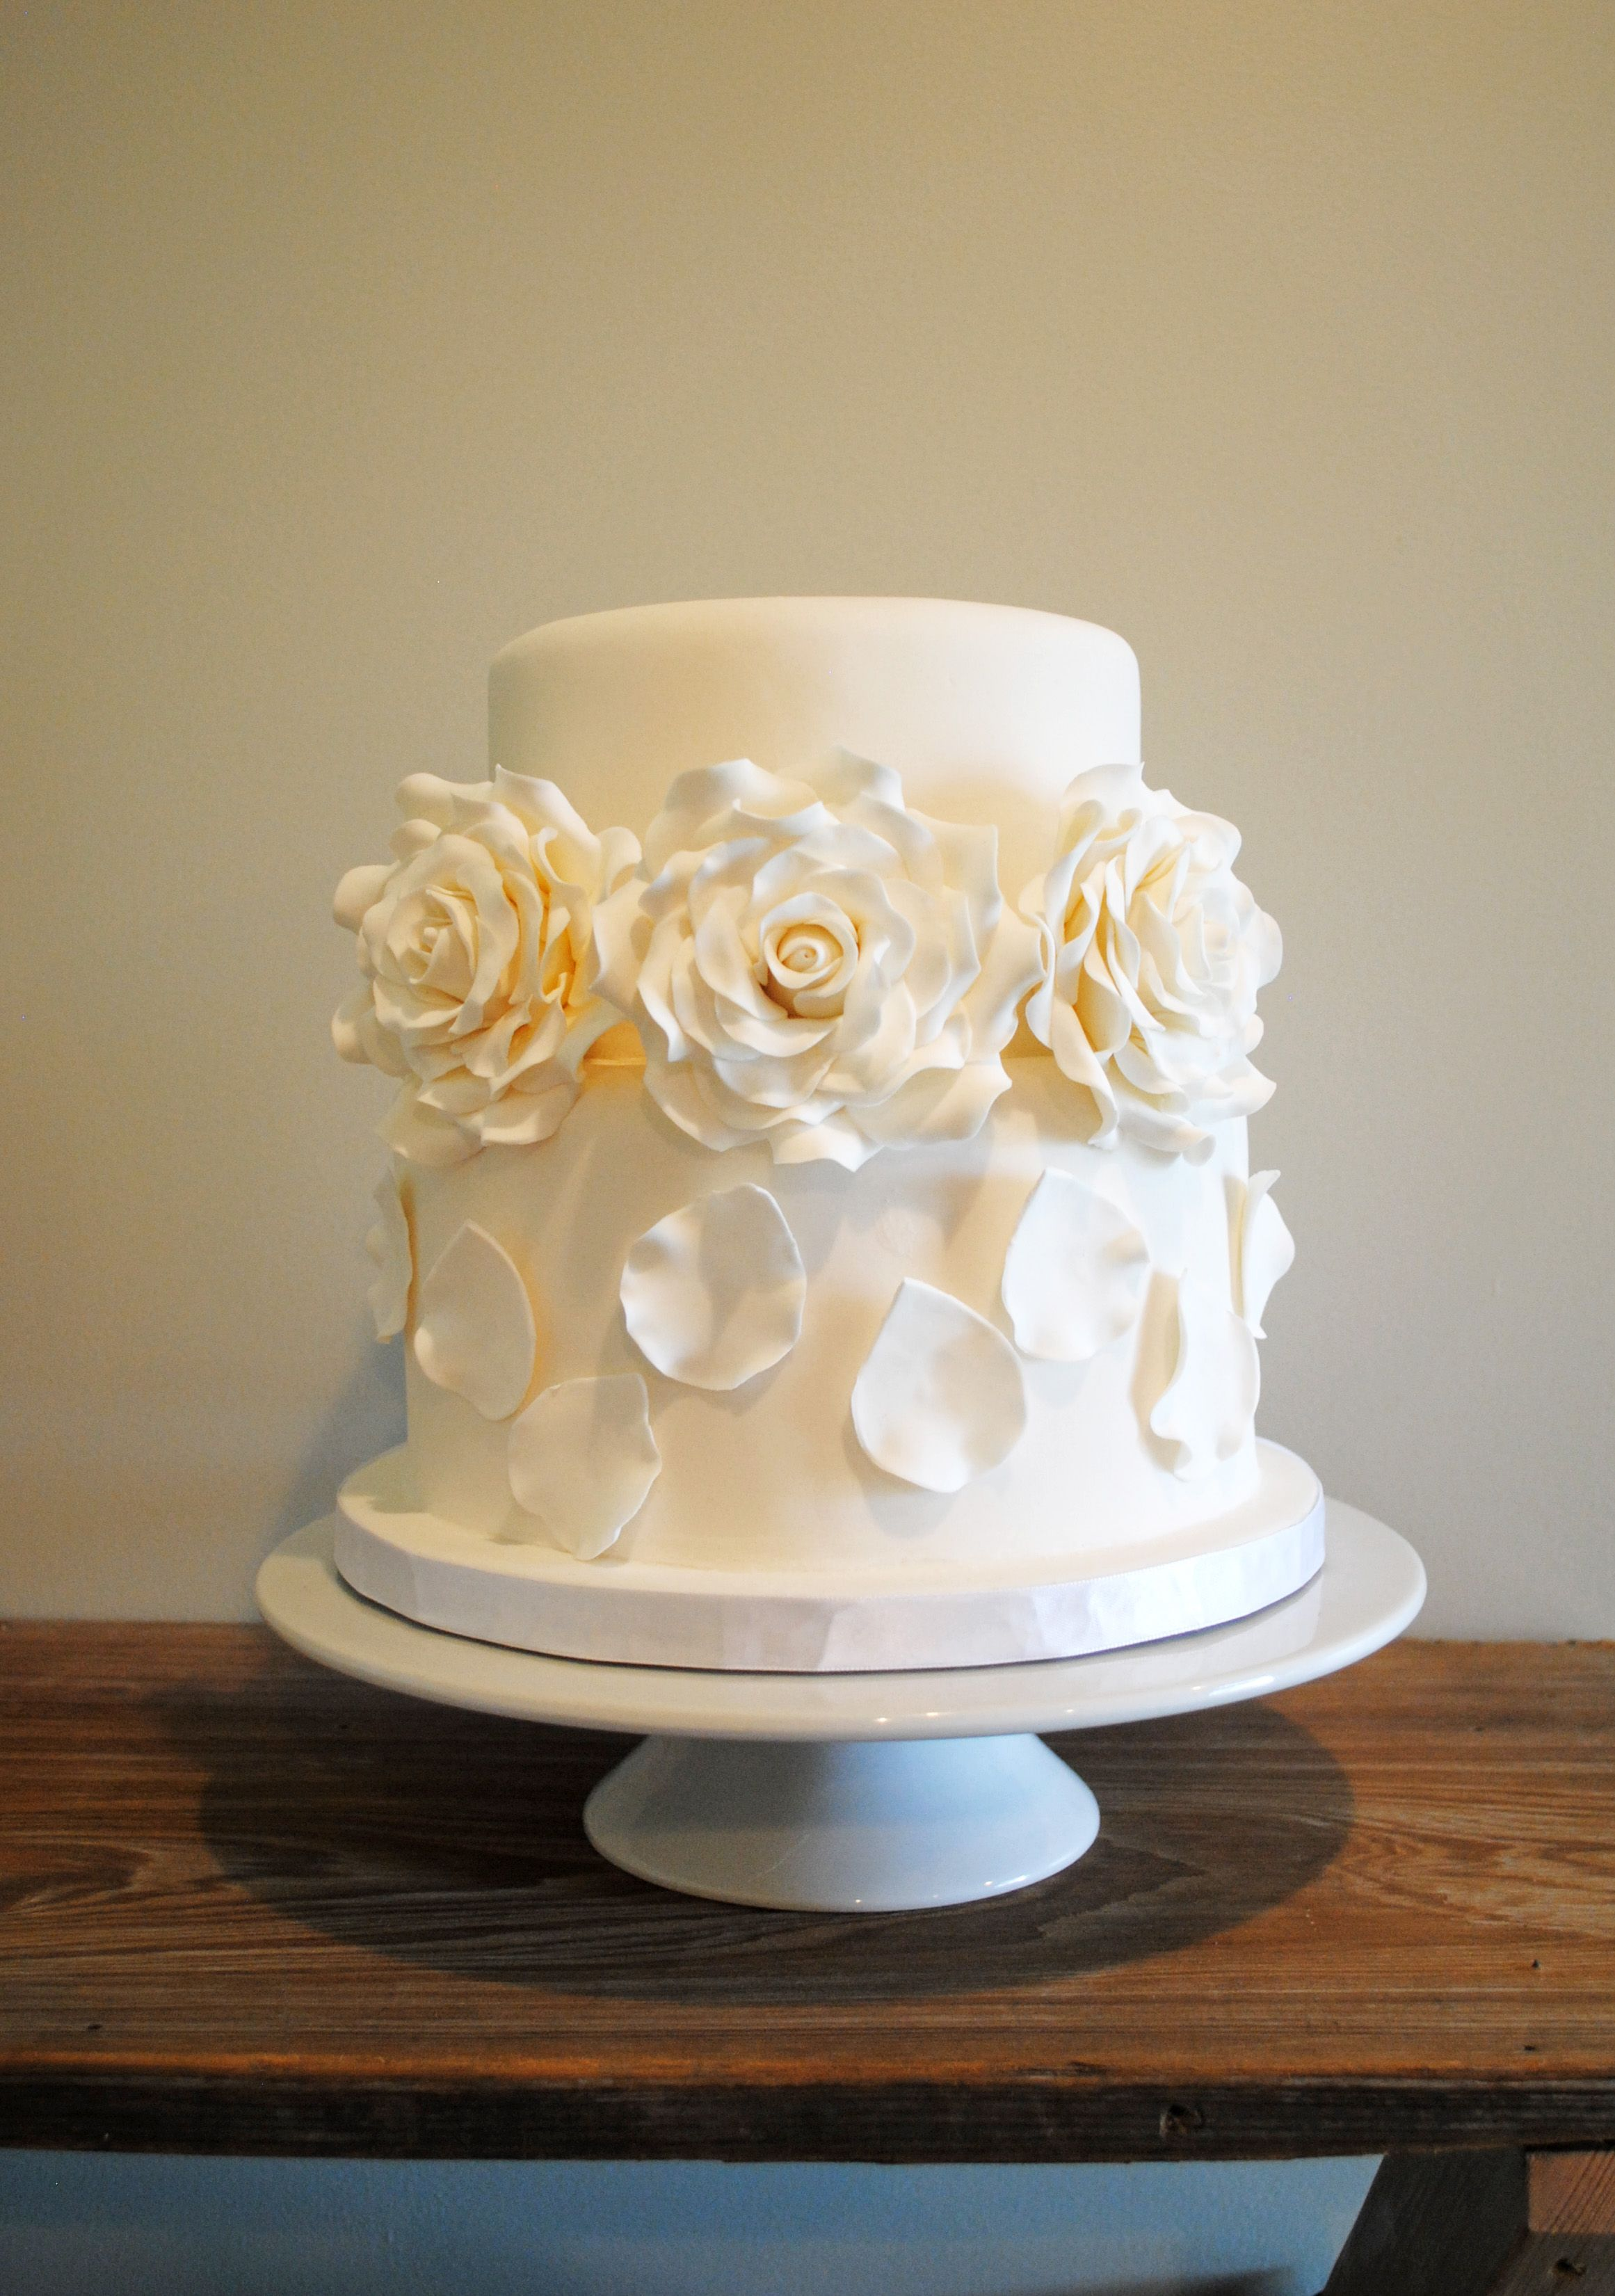 White on white cake with sugar roses and petals